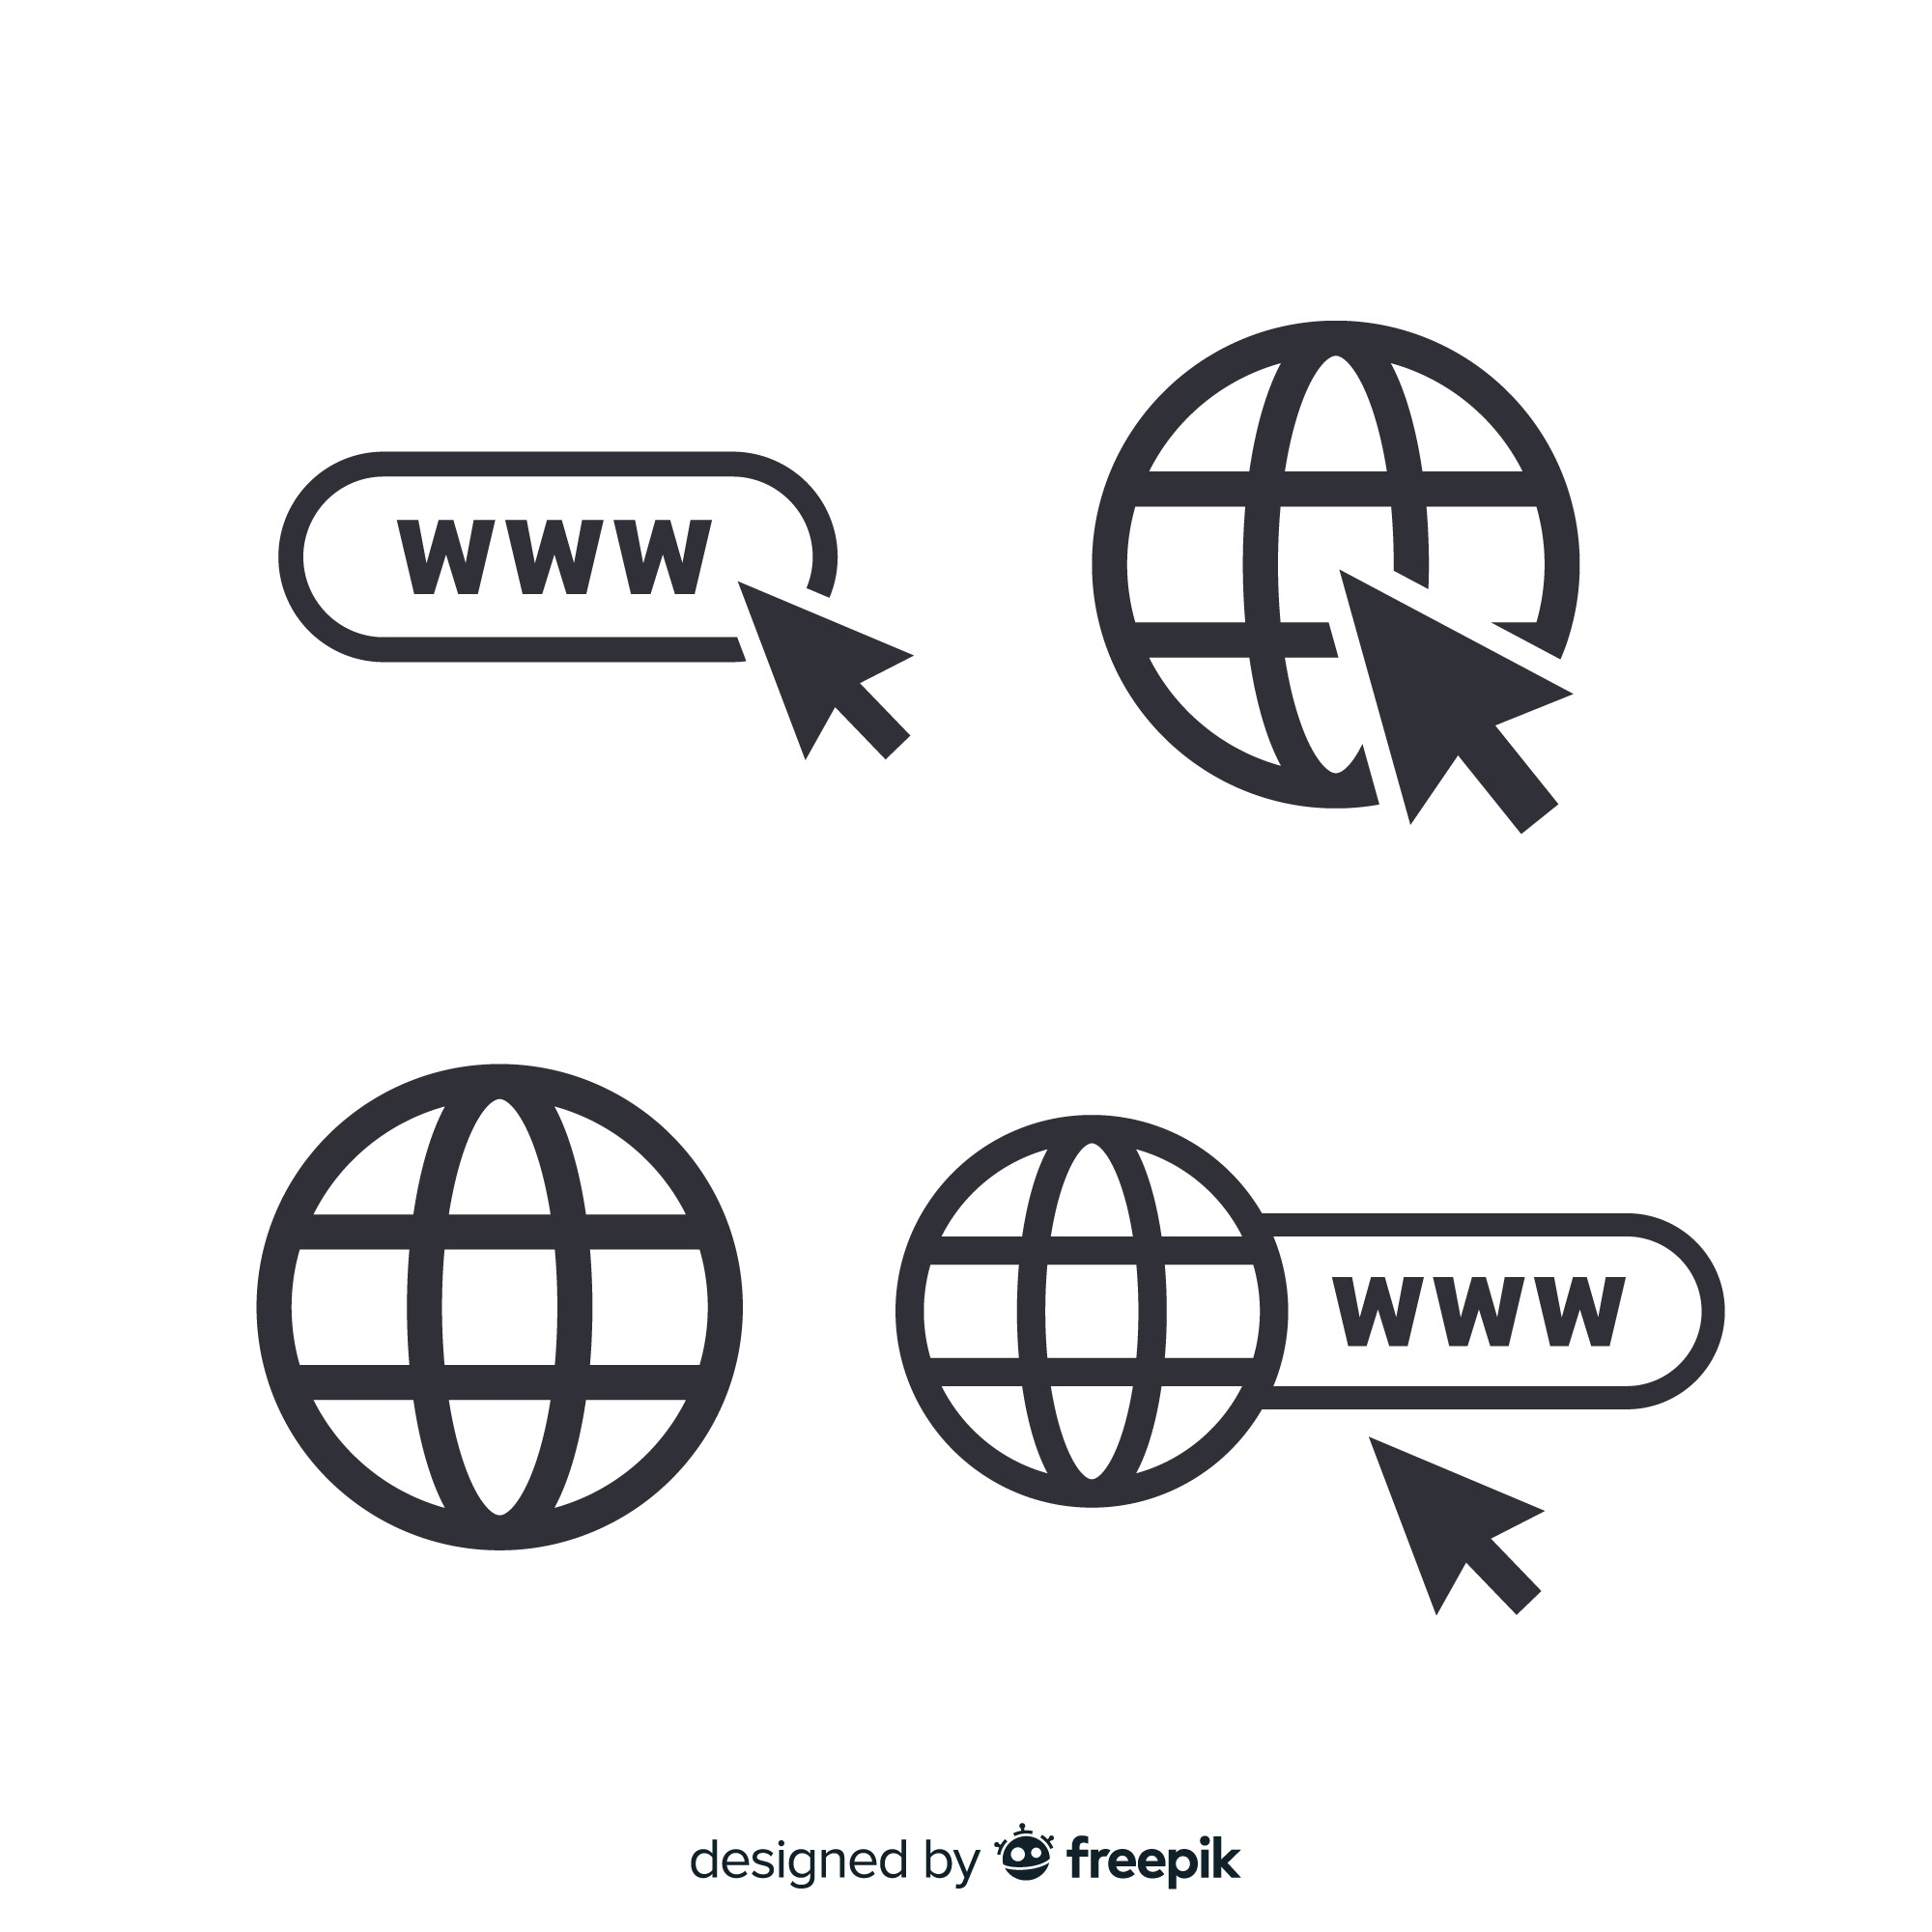 Www-pictogram